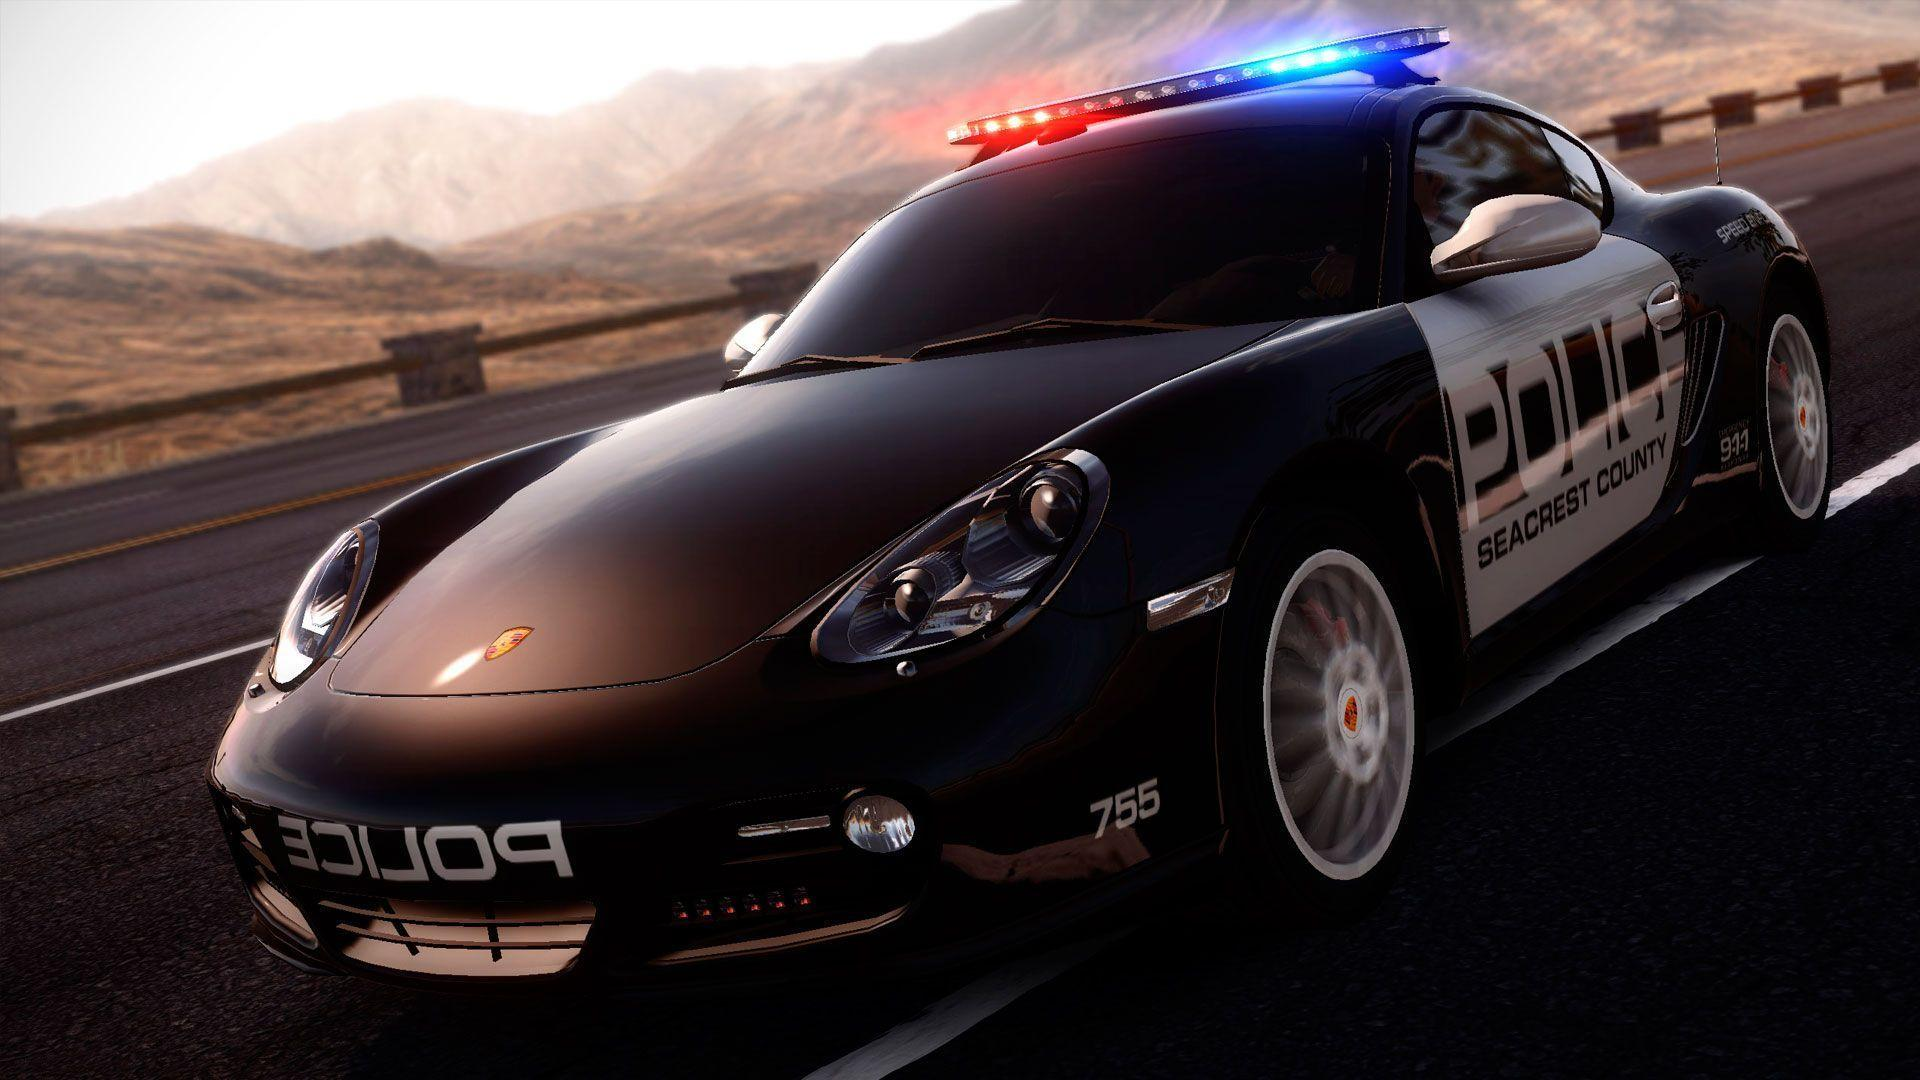 Best of police cars - Cool Police Car Wallpapers Cool Car Wallpapers Best Desktop